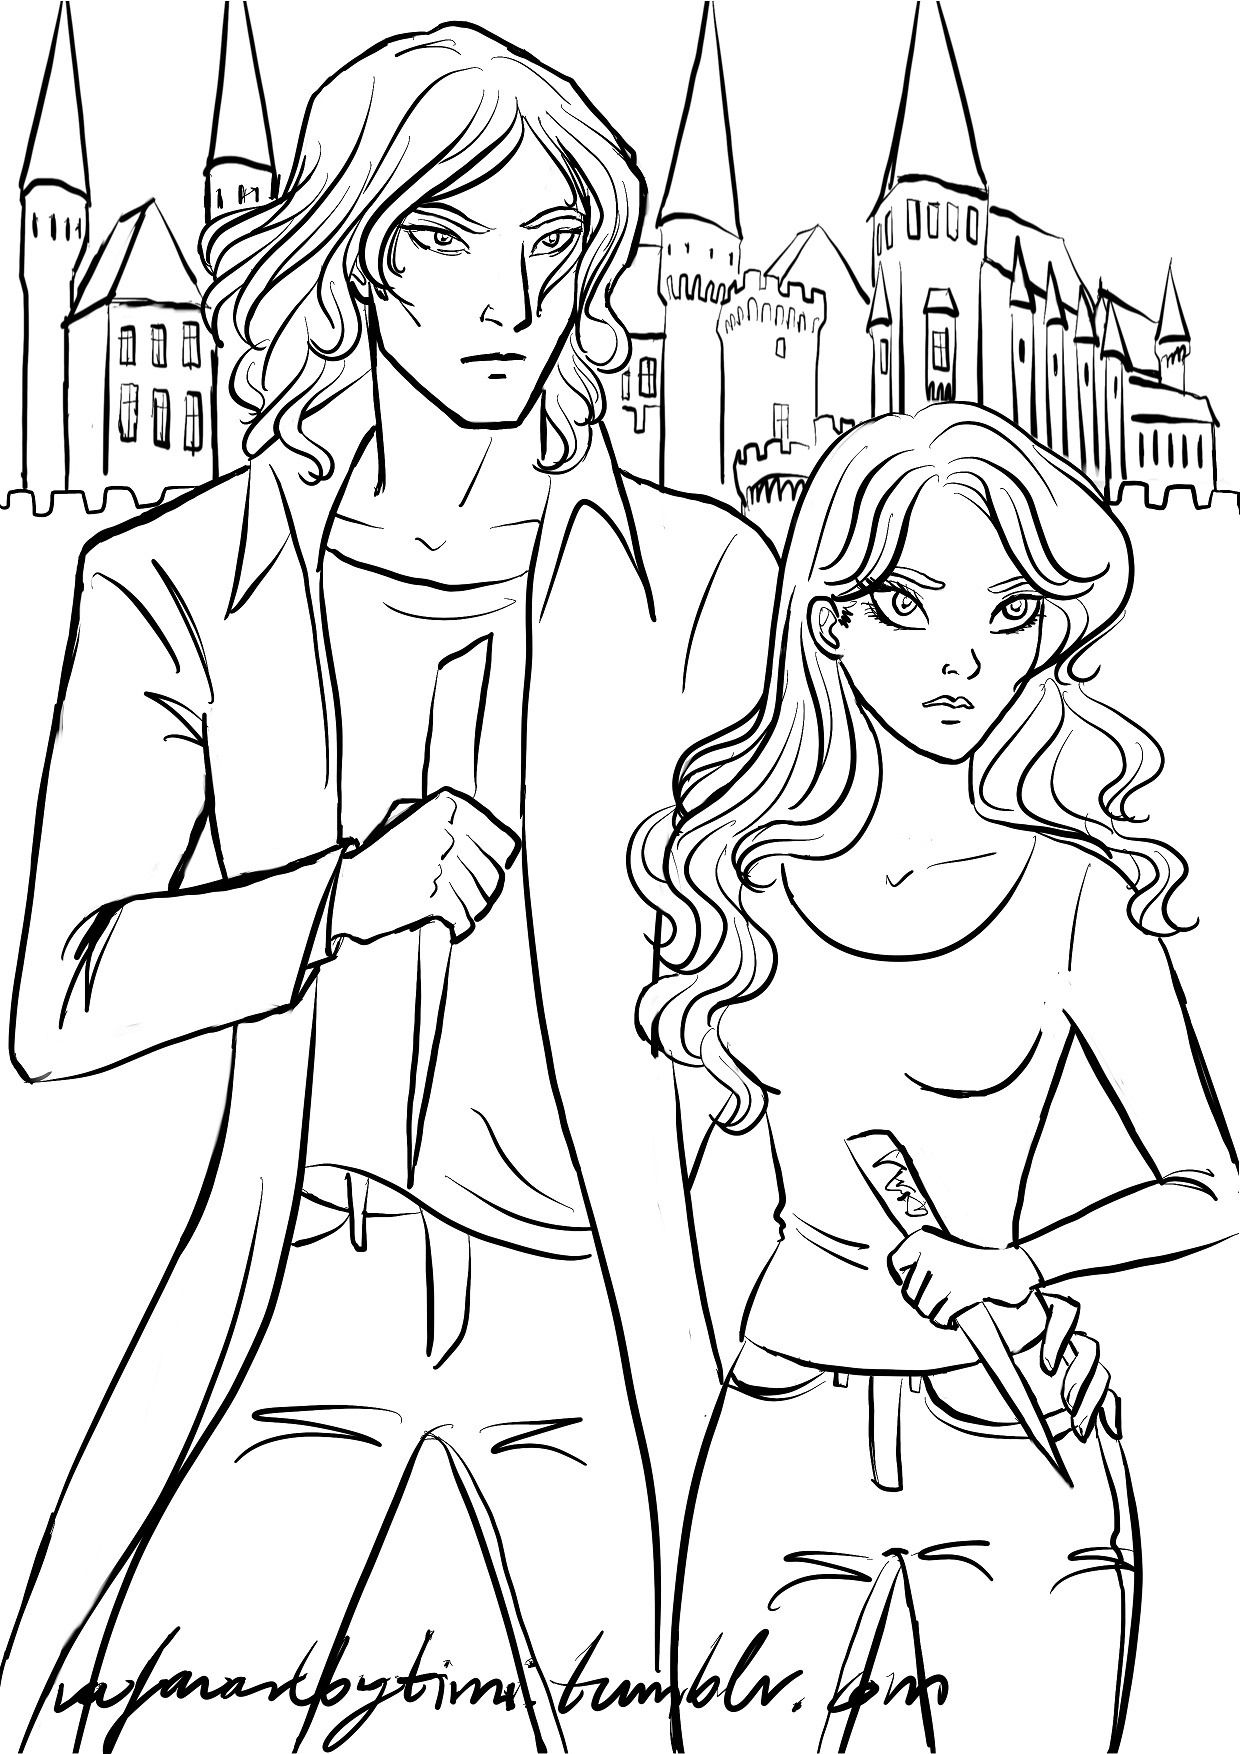 Blog For My Va Fanarts And Illustrations I Love To Draw And Hope You Enjoy Requests Are Closed Vampire Academy Vampire Academy Books Vampire